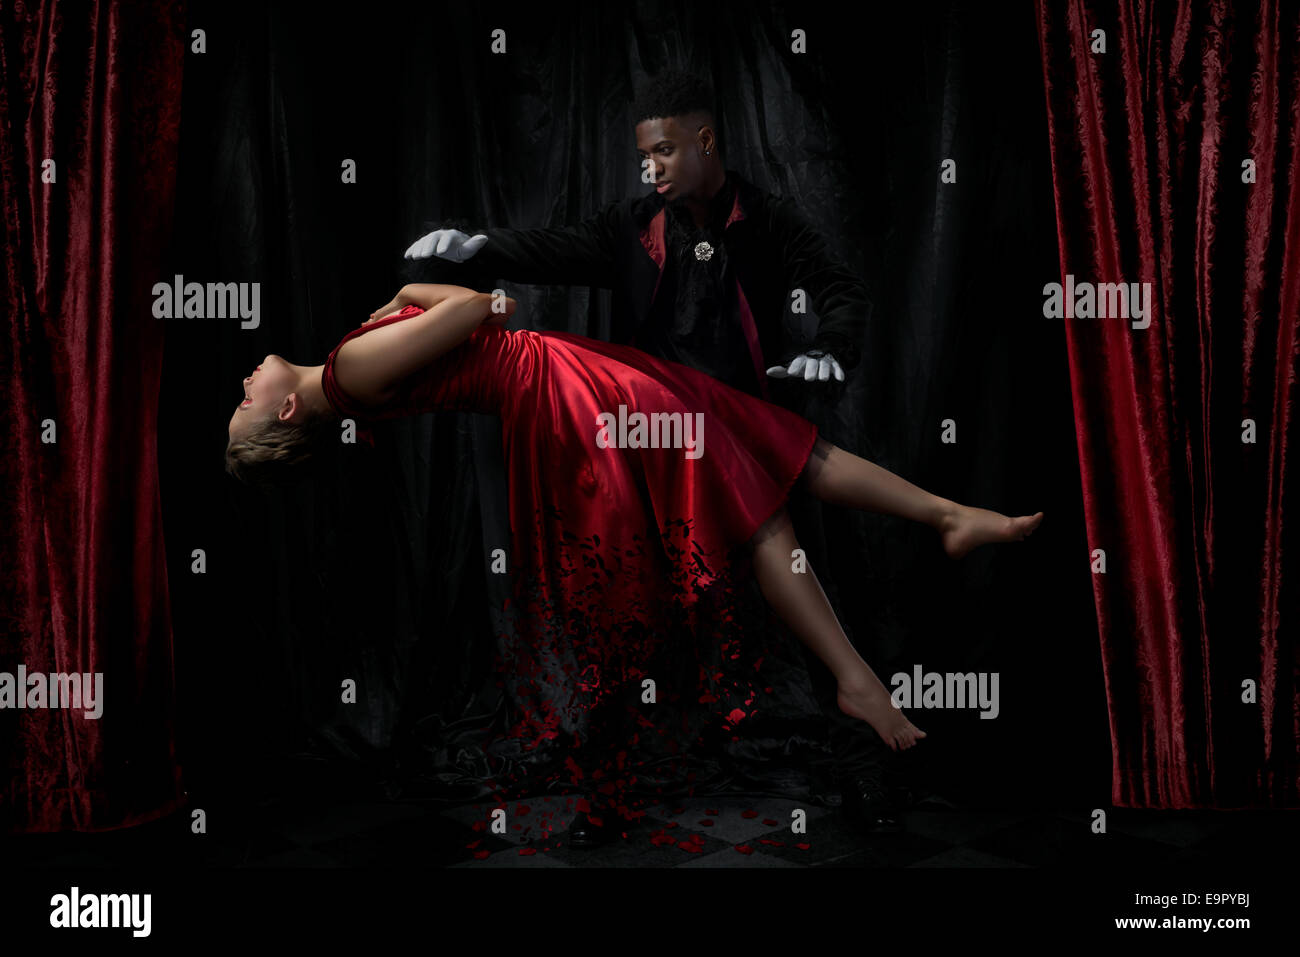 Magician performing levitation act on a stage - Stock Image